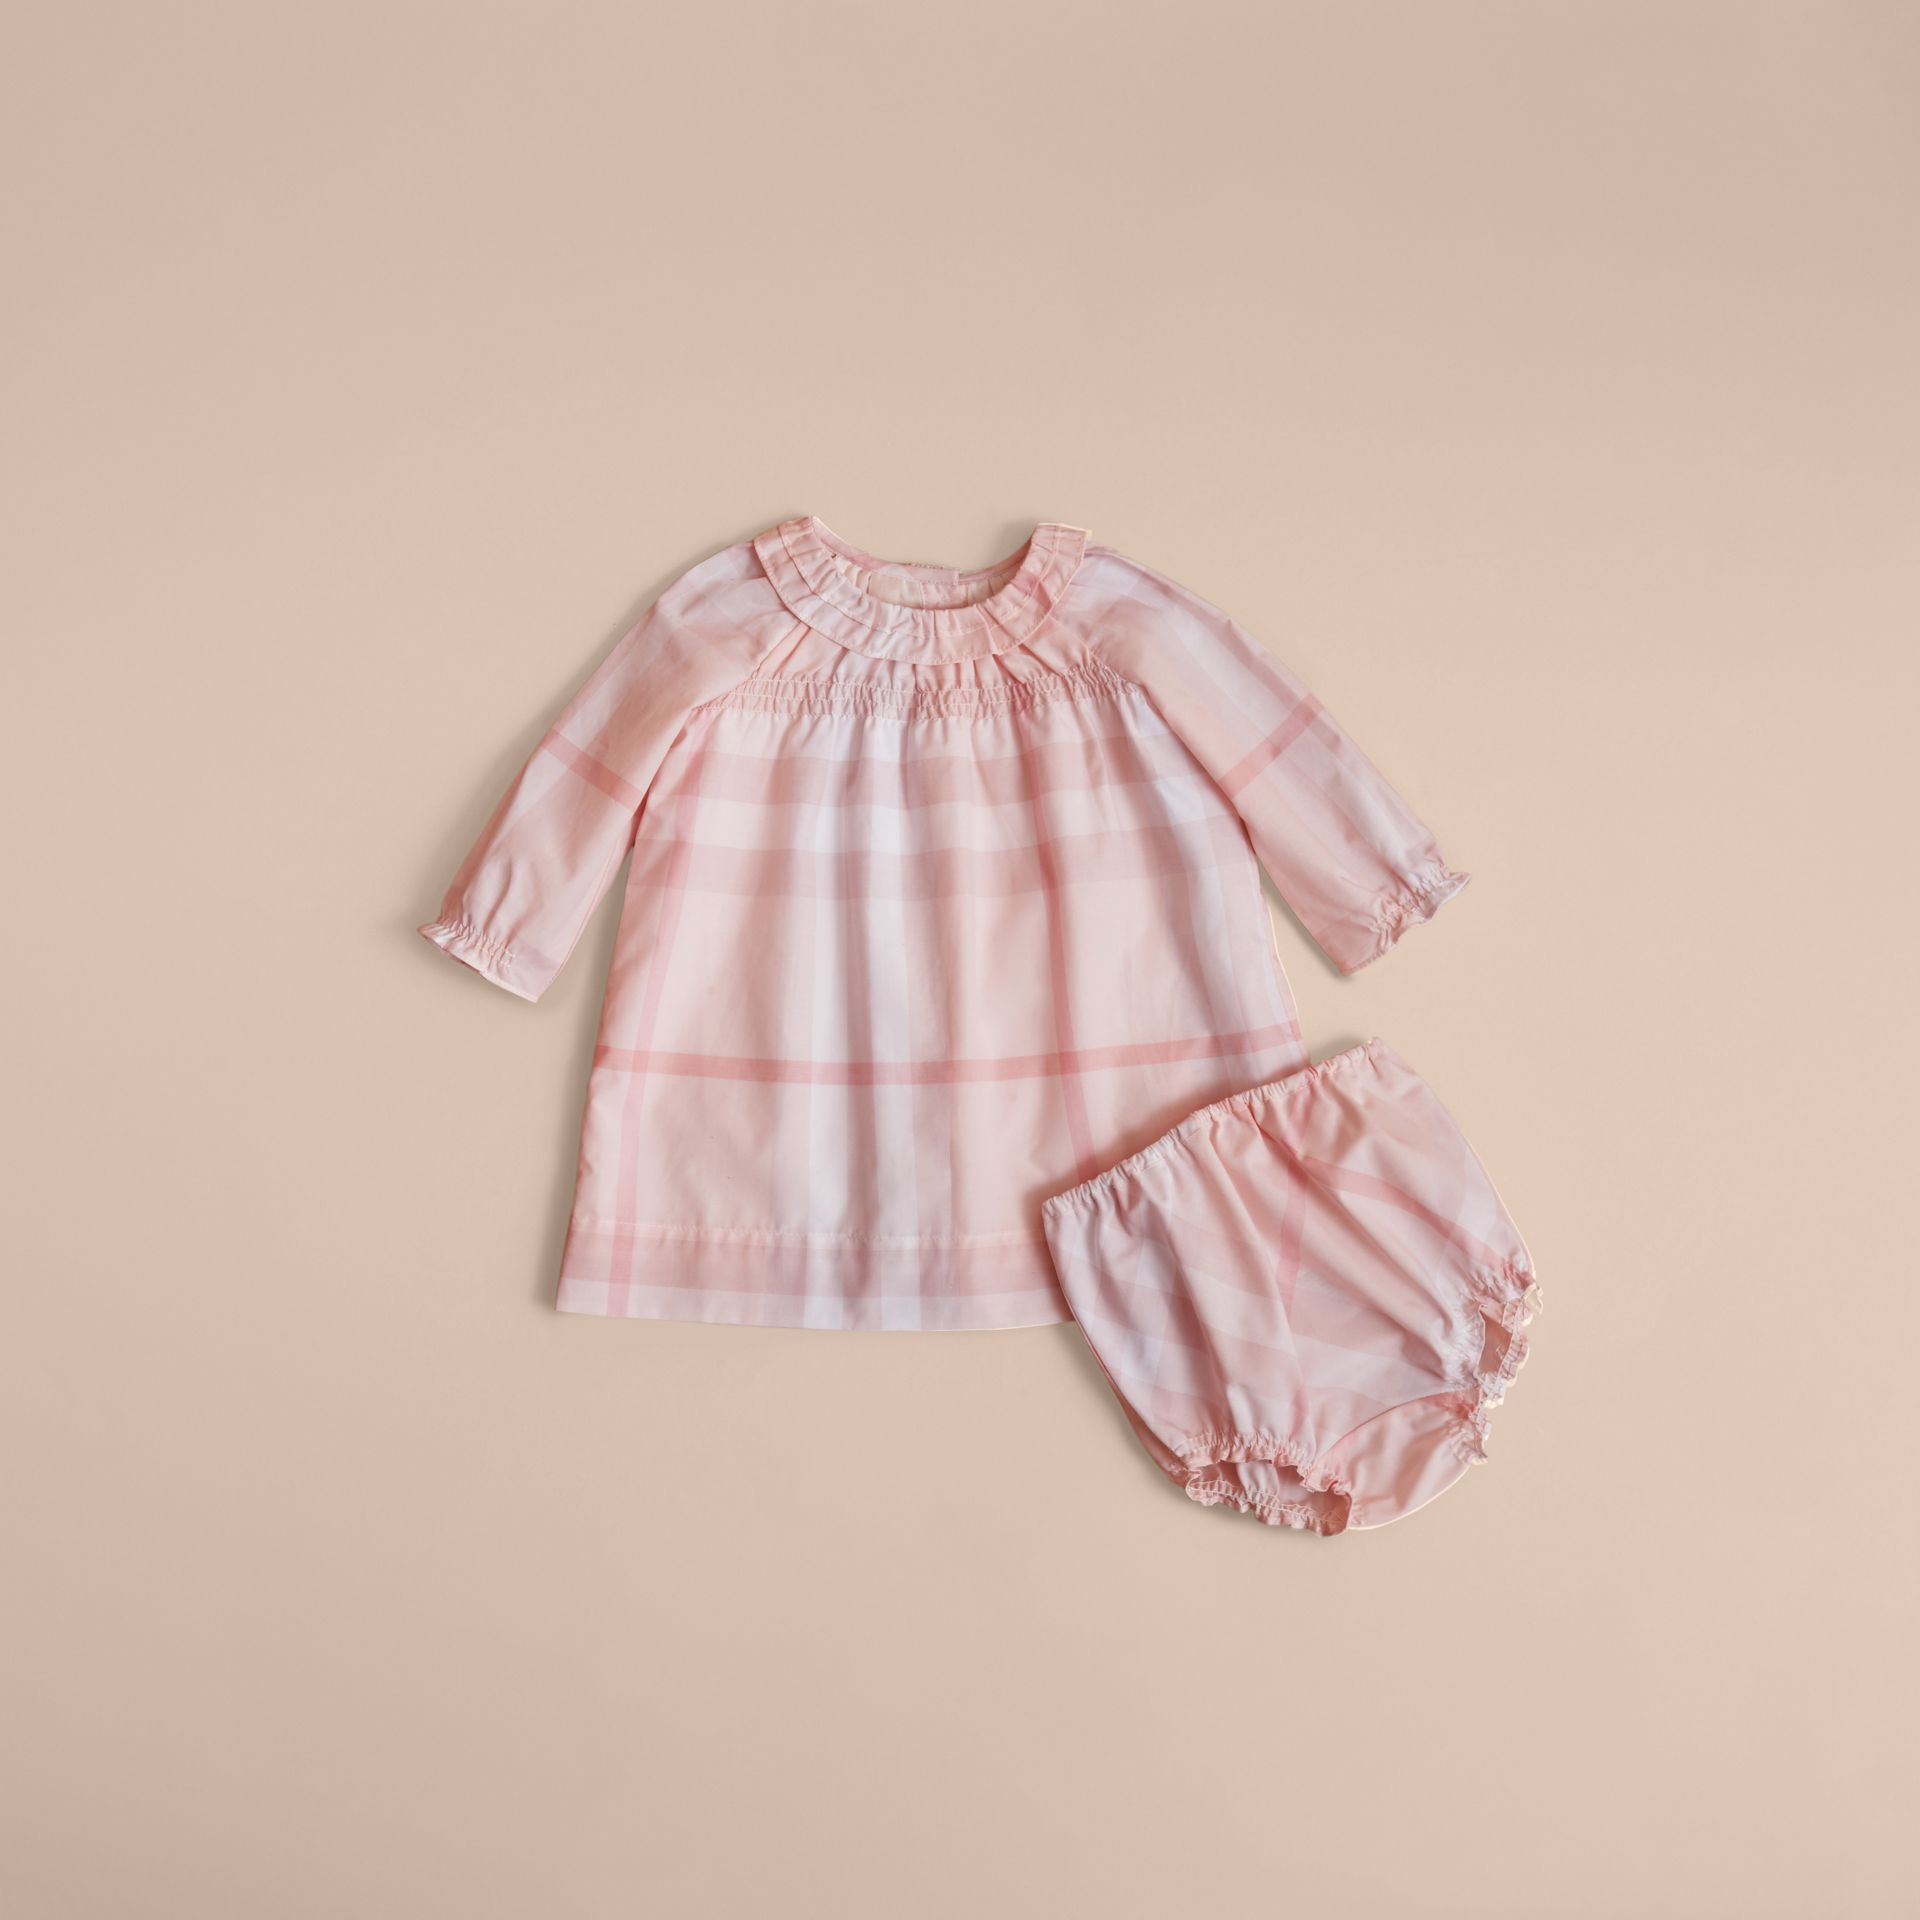 Ruffle Detail Check Cotton Dress and Bloomers in Ice Pink | Burberry United Kingdom - gallery image 3